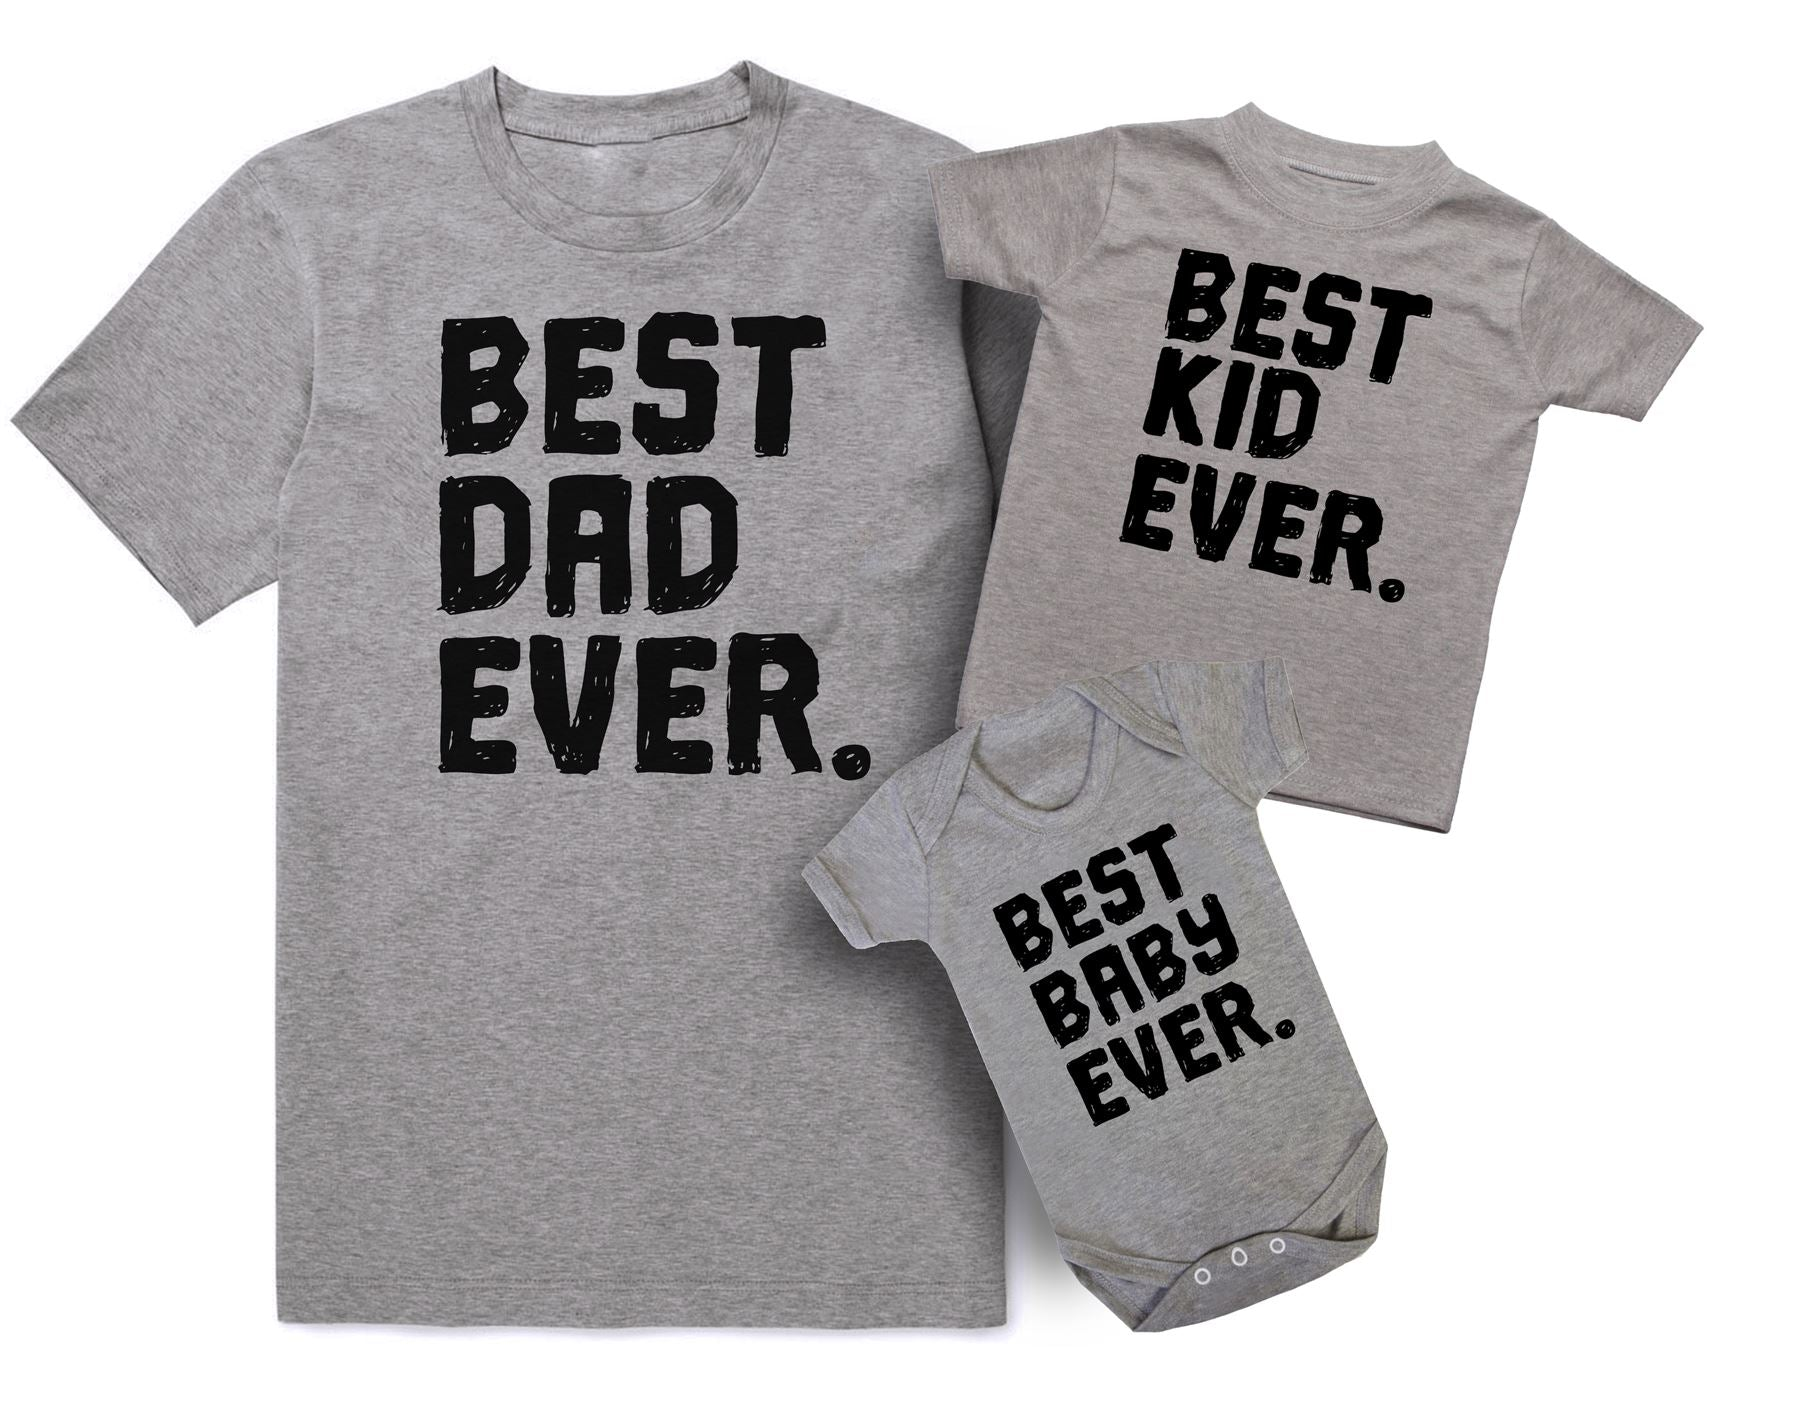 9f3080cba Best Dad Ever Best Kid Ever And Best Baby Ever Father and Baby Matching  Outfits